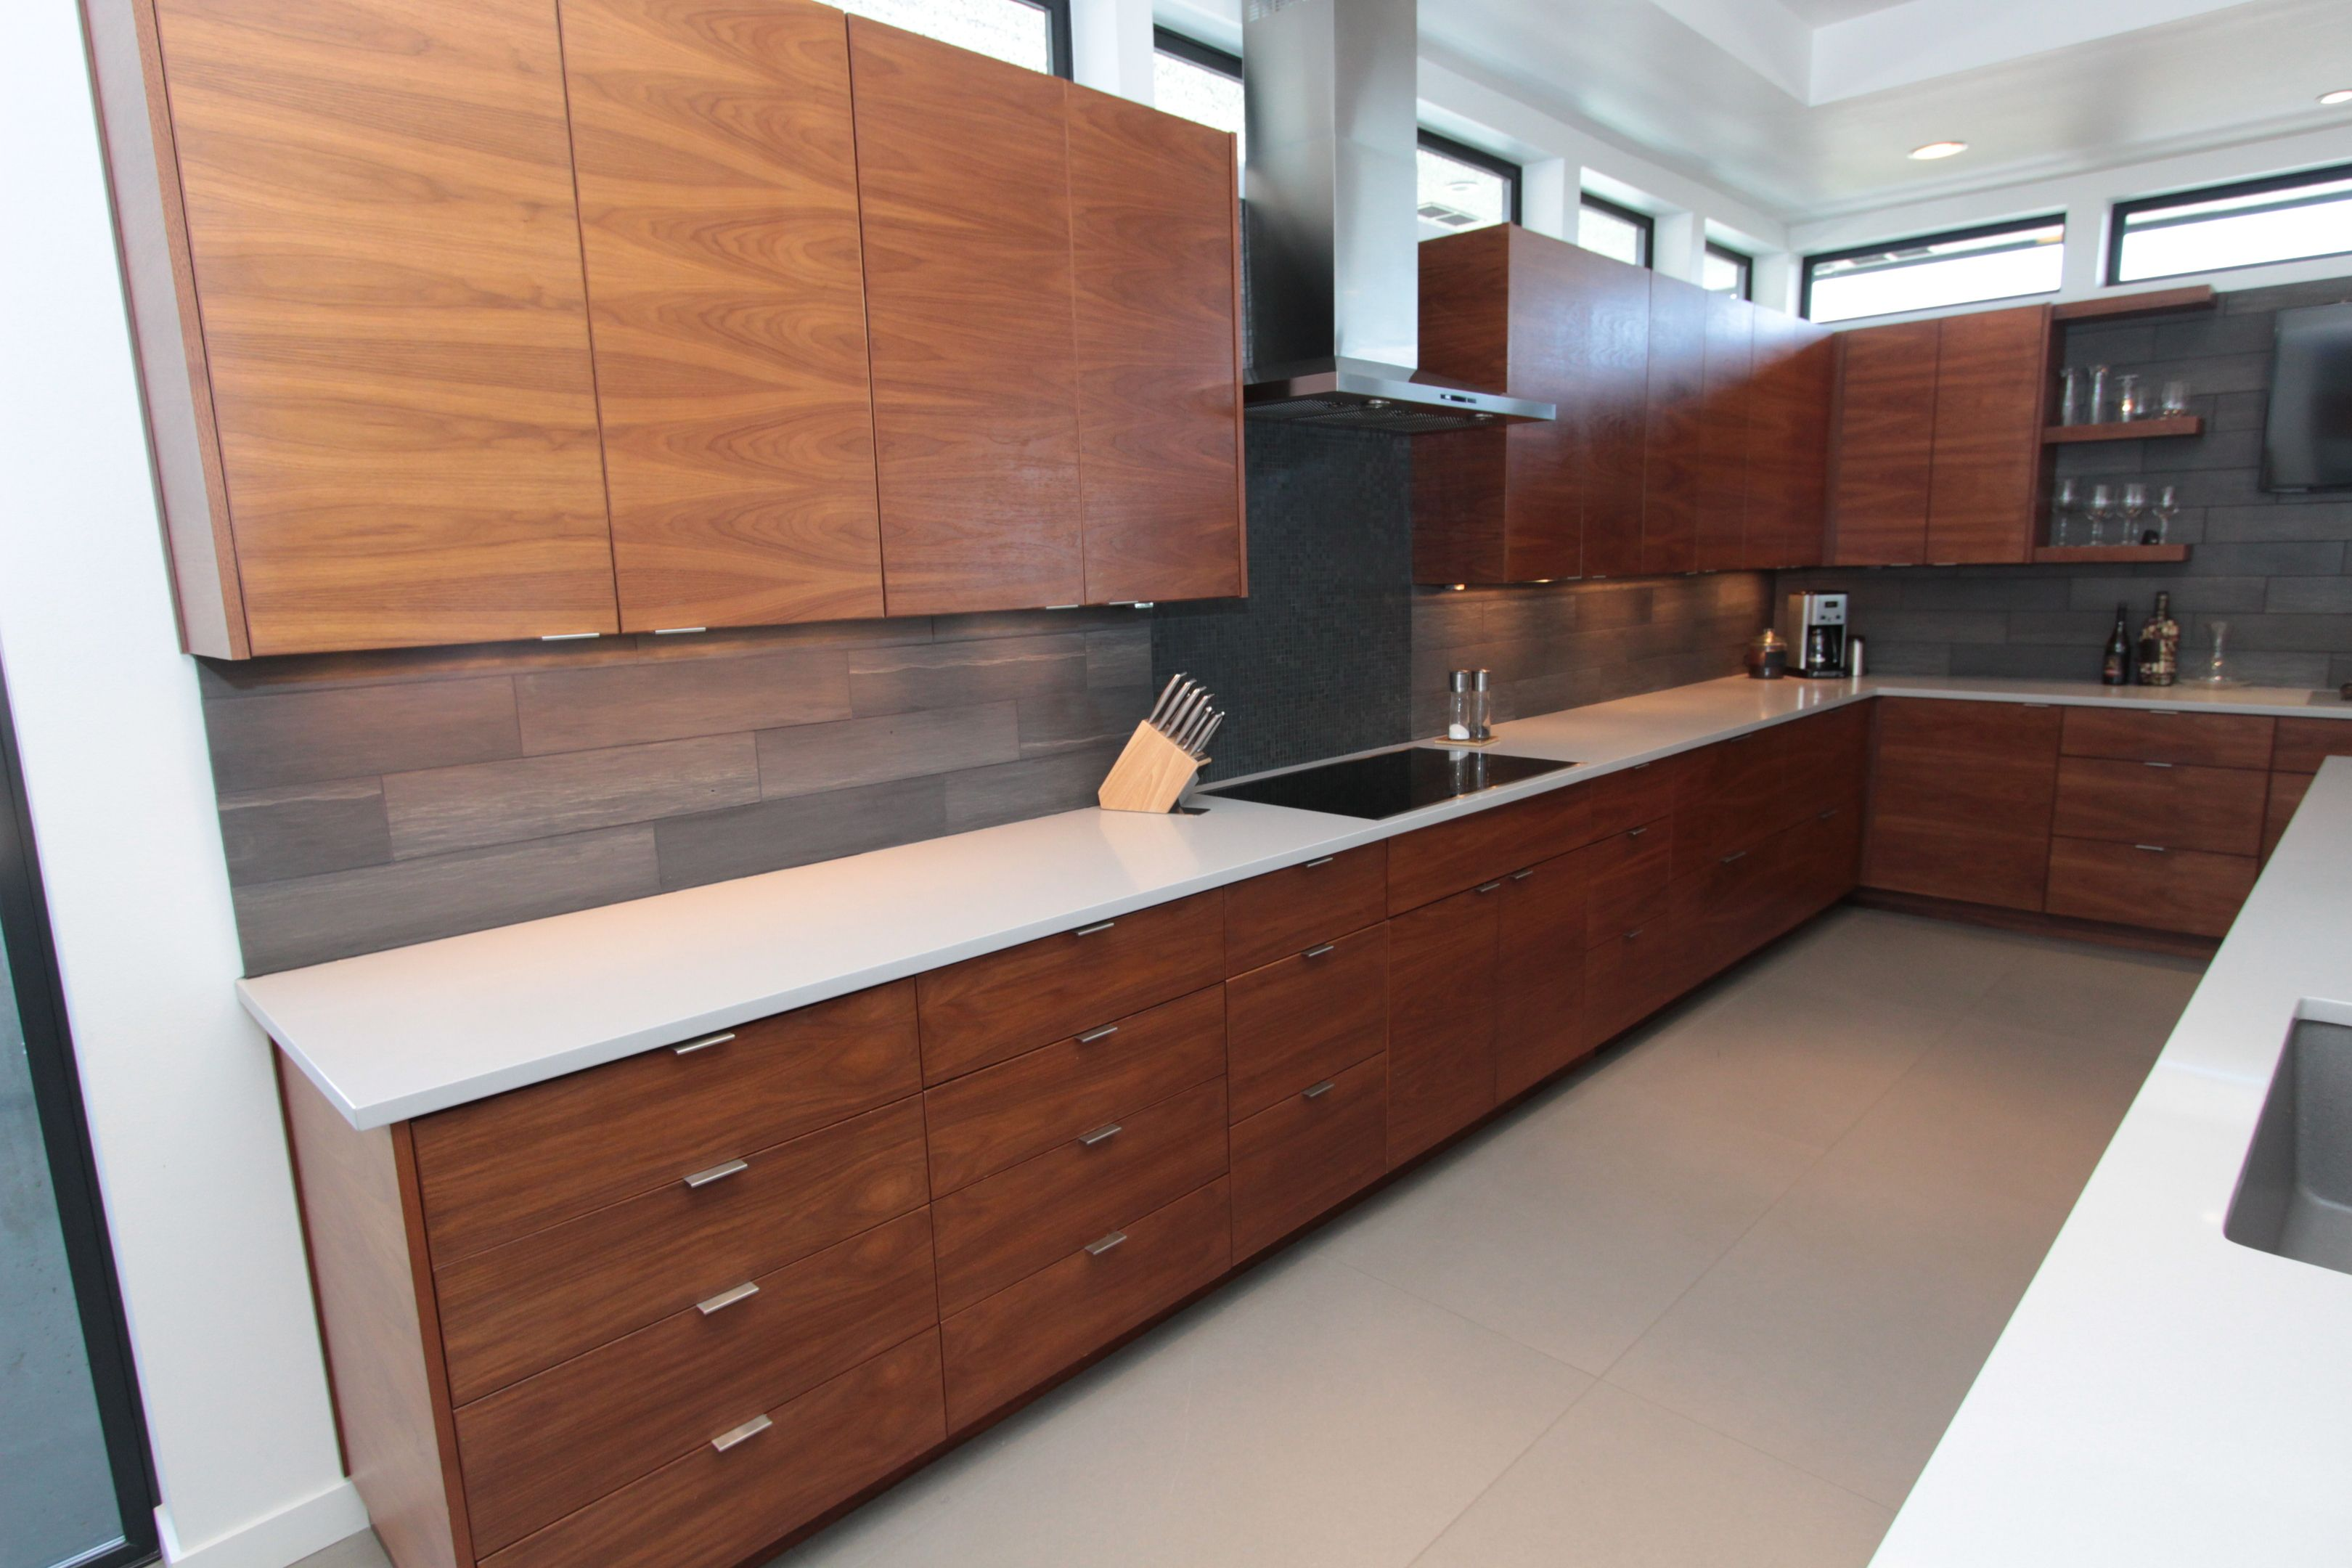 I like the grey walls with white countertop and wood cabinets ...